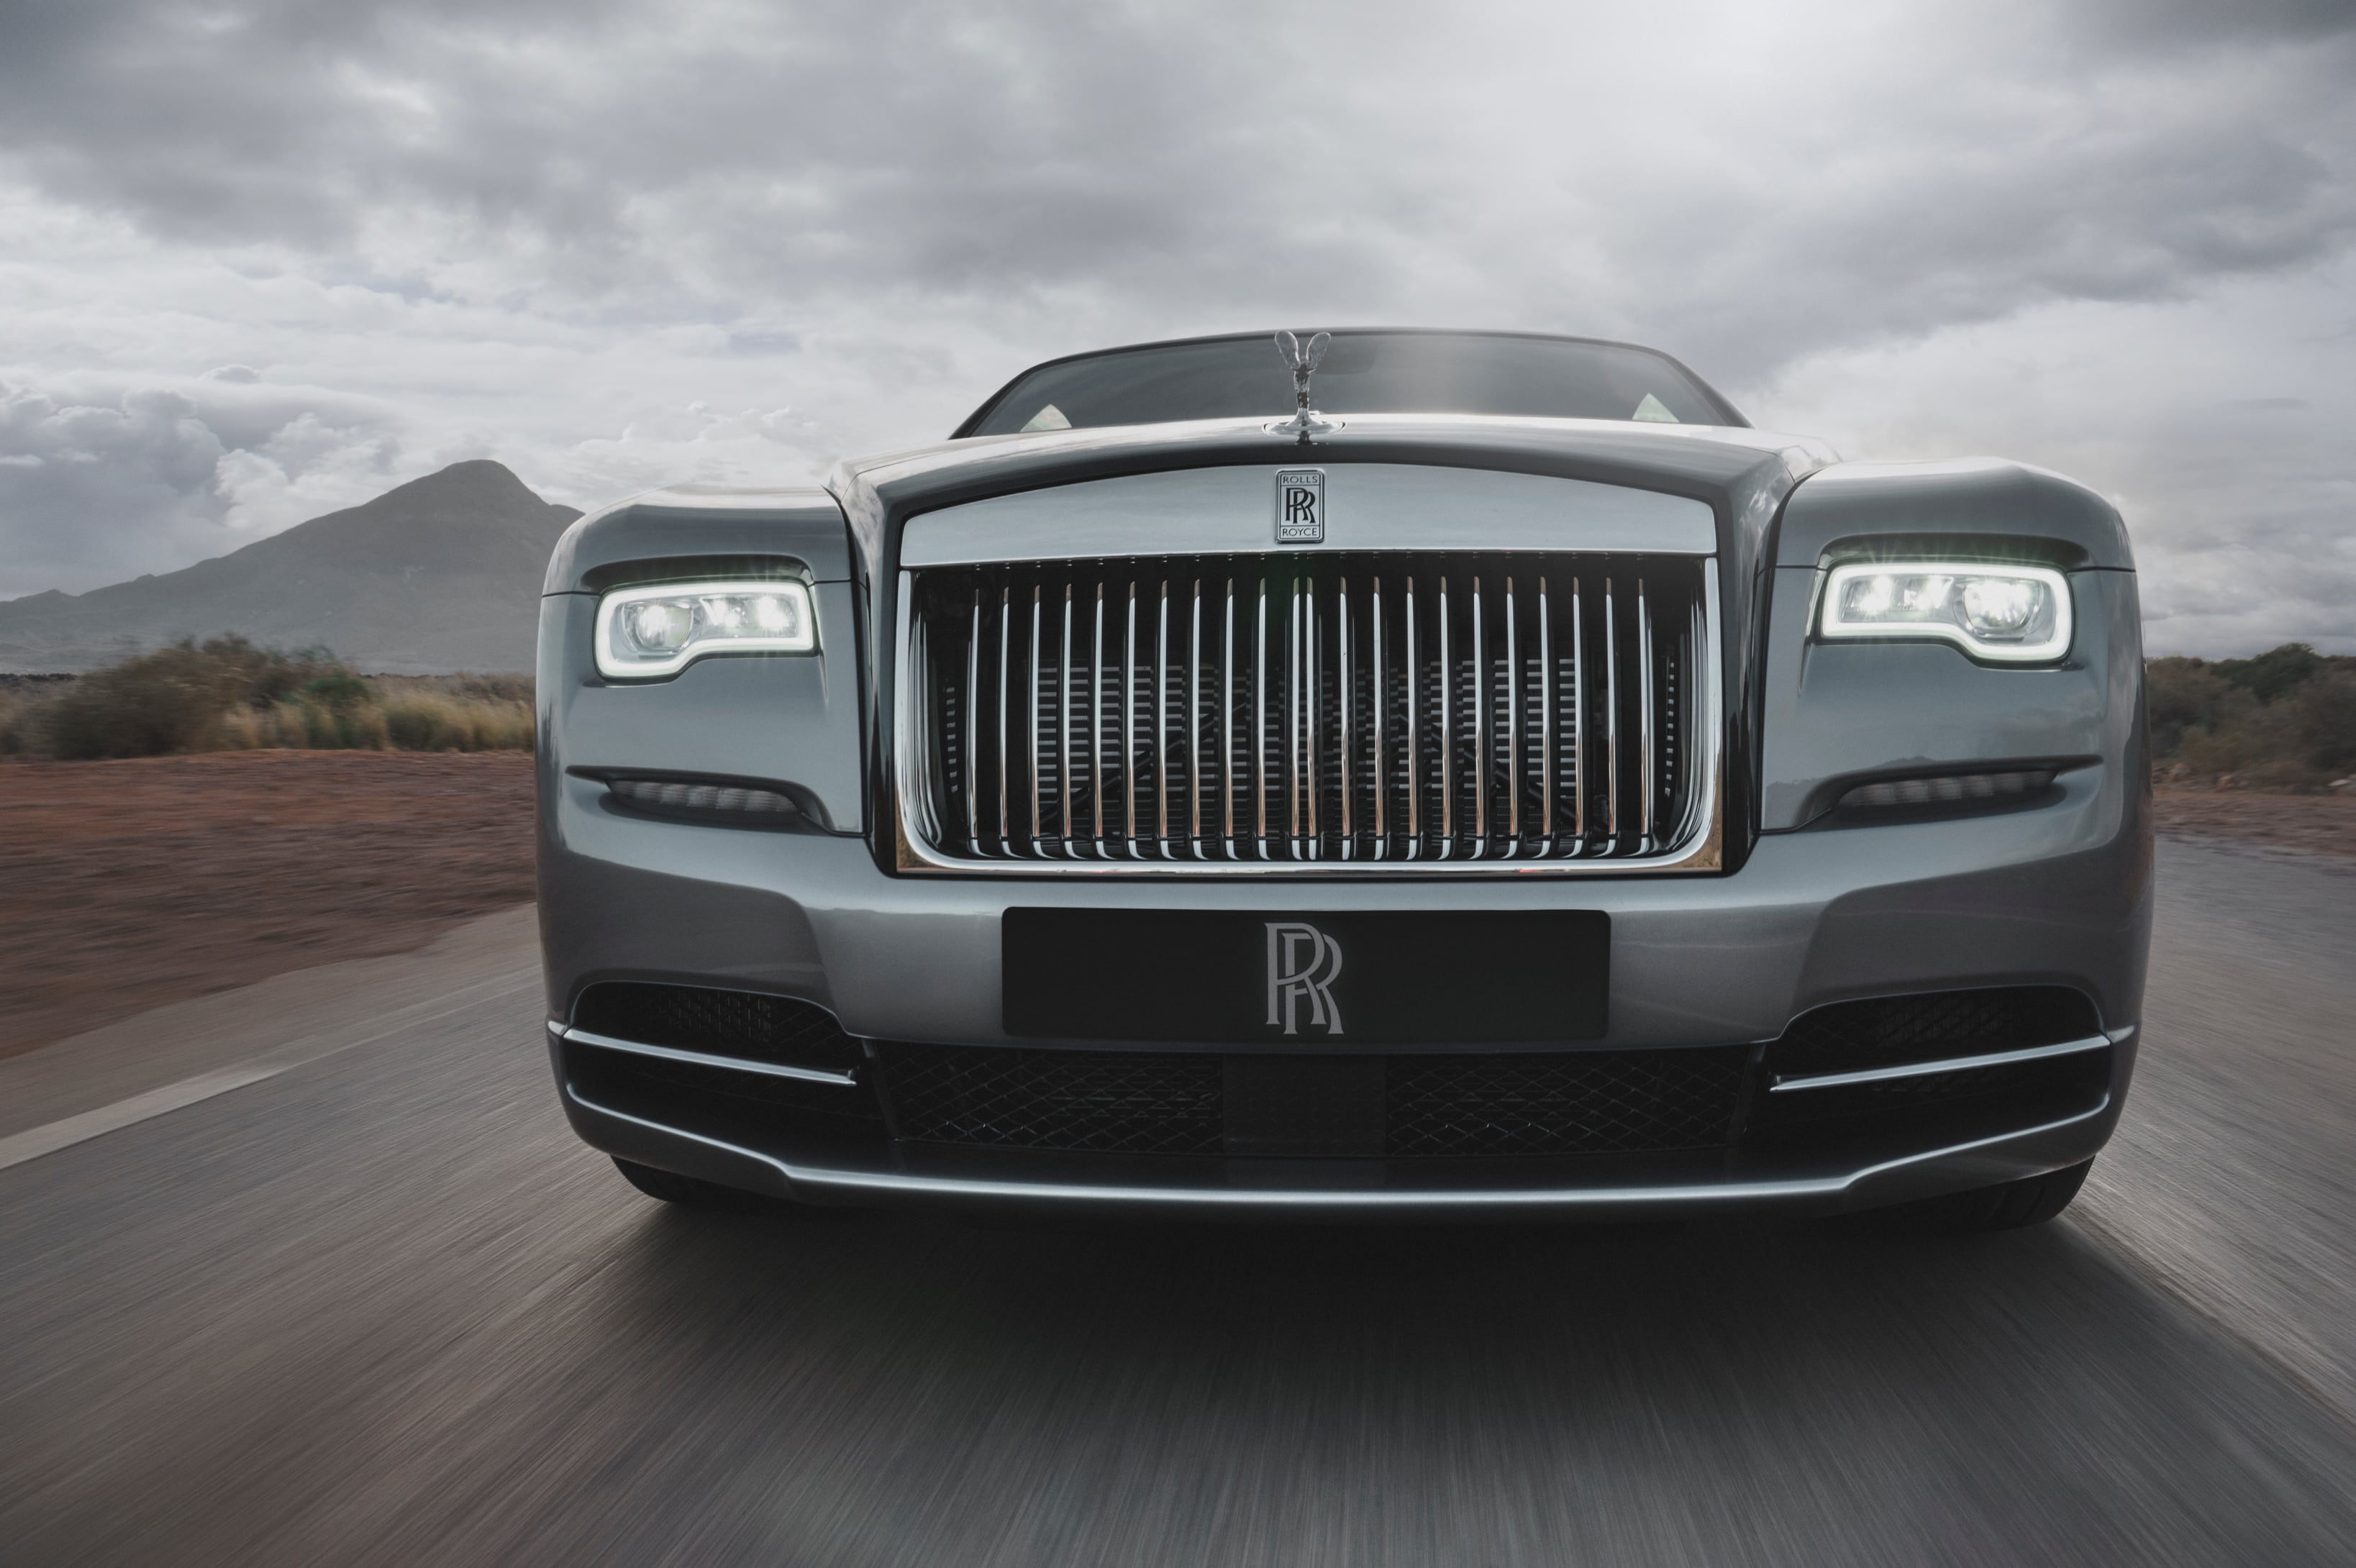 Rolls-Royce Wraith on the road, front symmetrical view of  lights and grille close up, with mountains in background